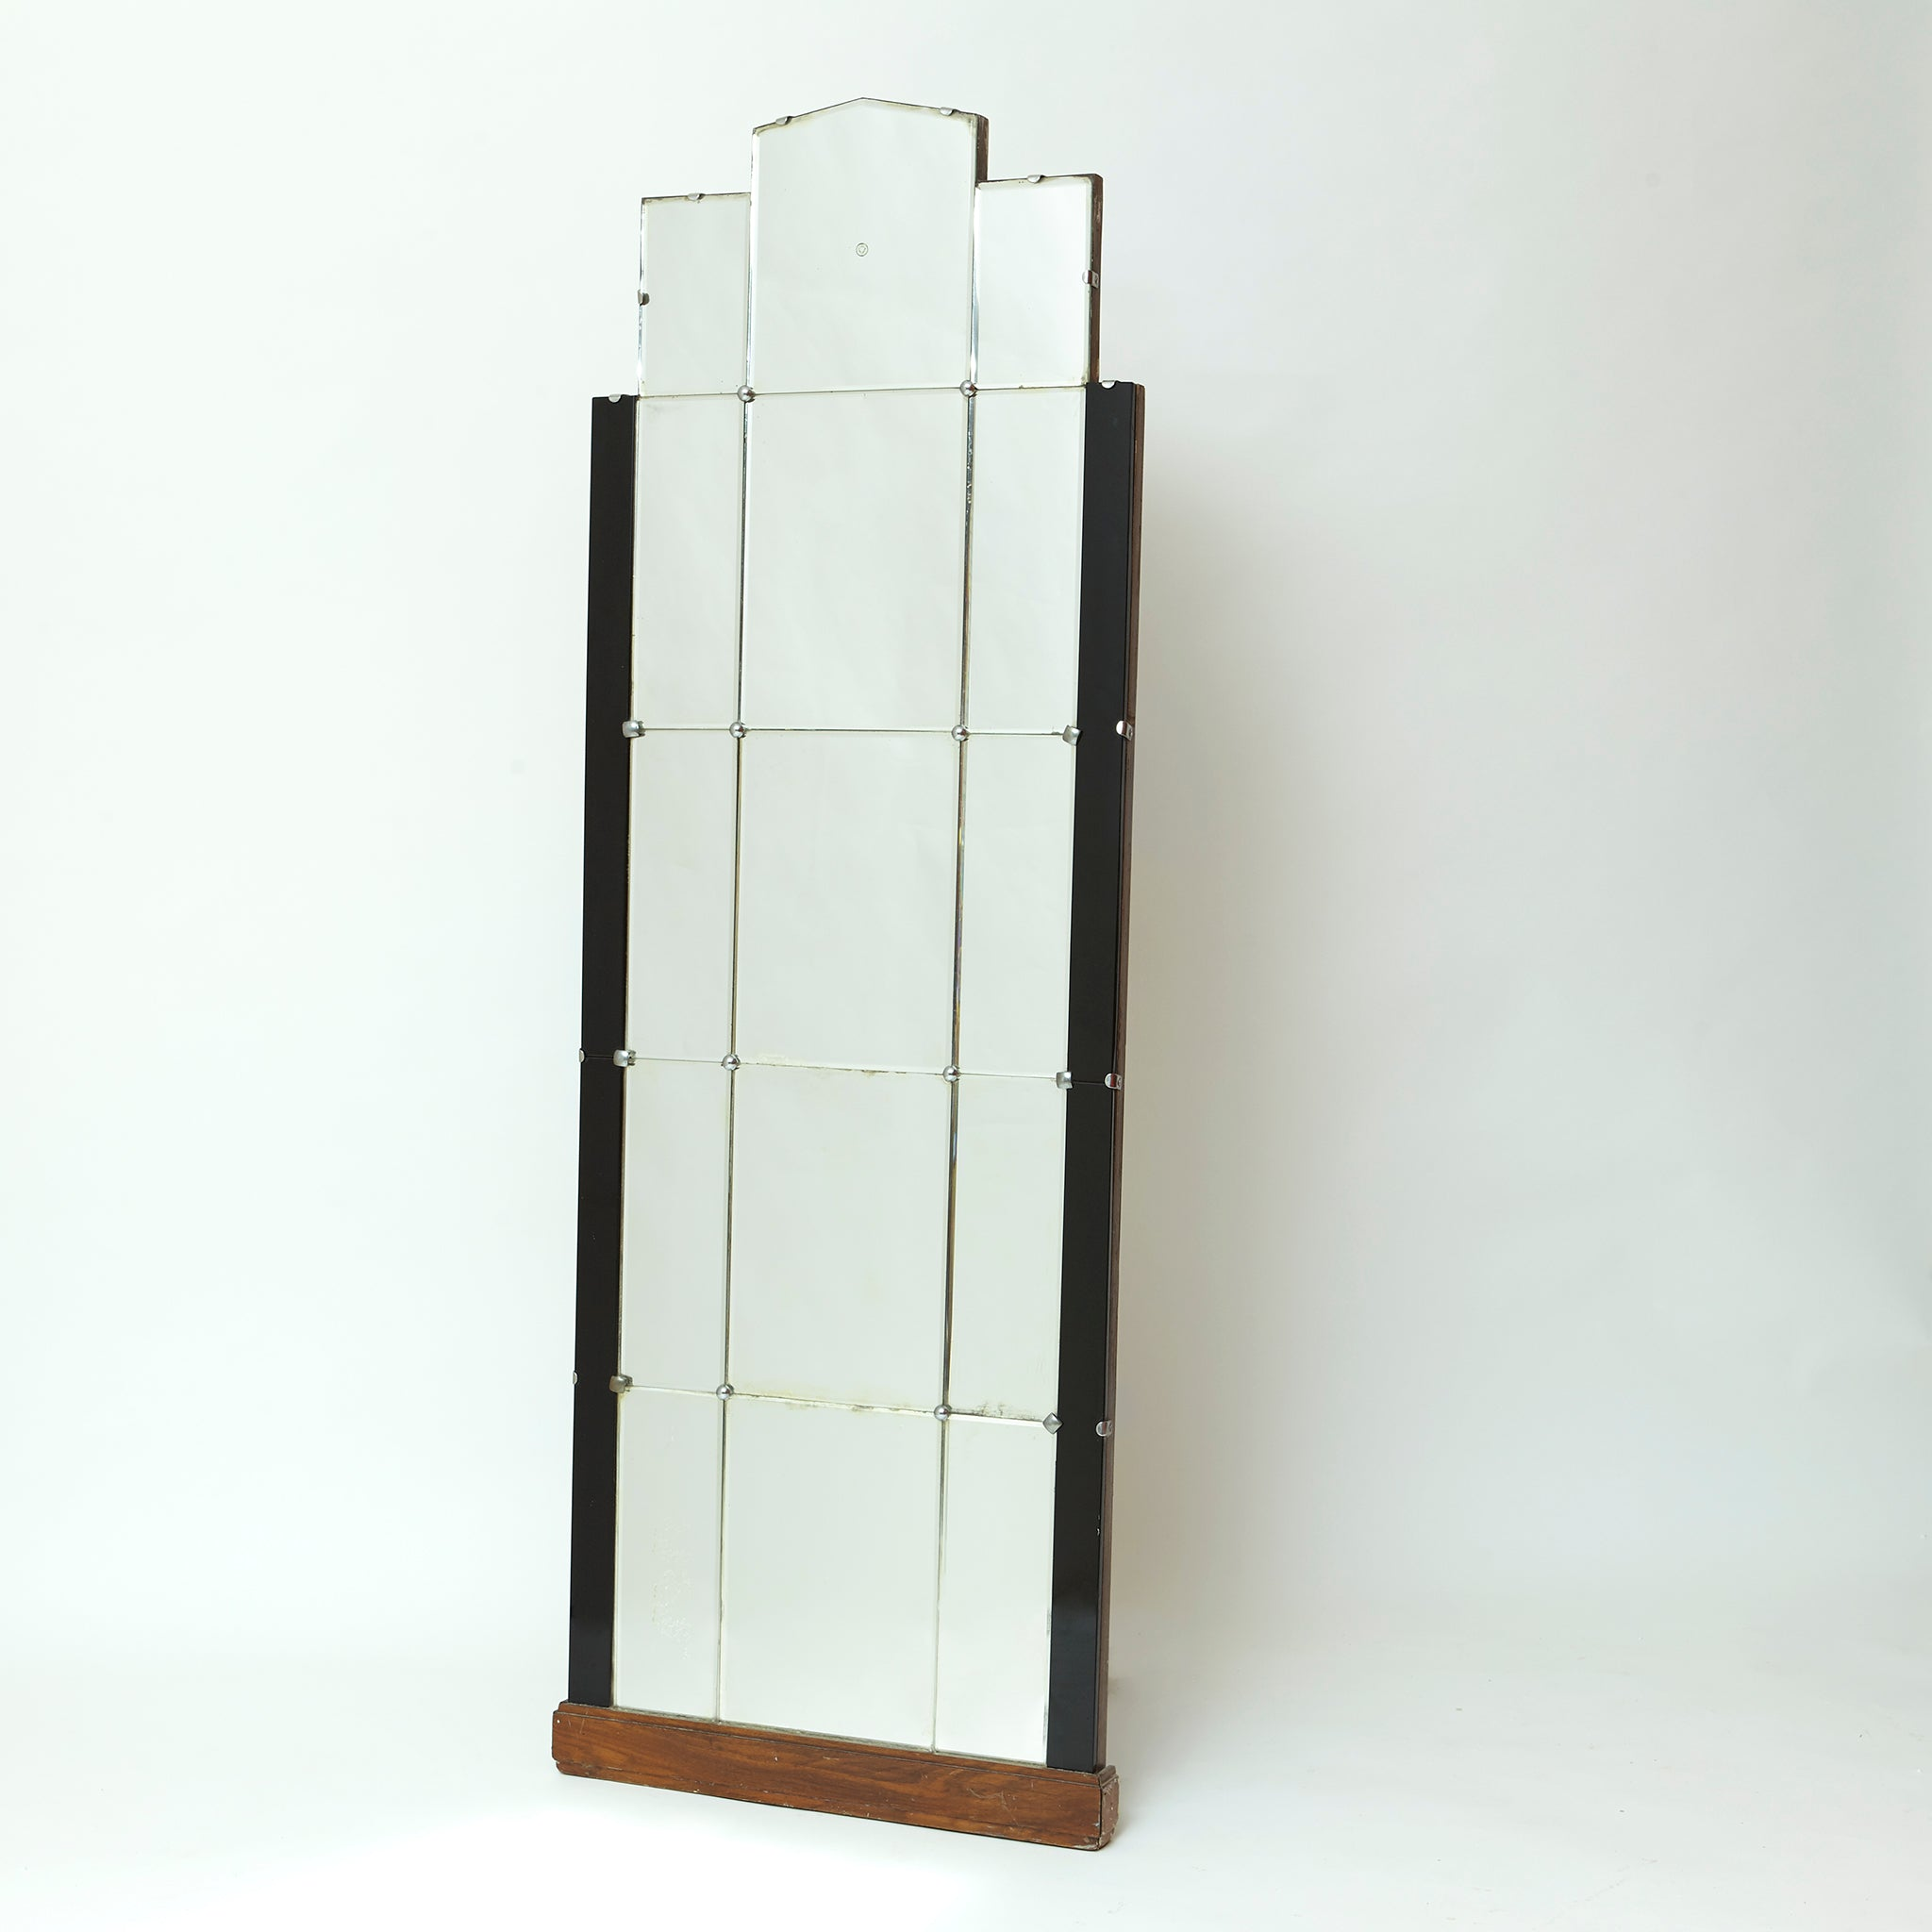 English art deco mirror with black glass edging circa 1920.